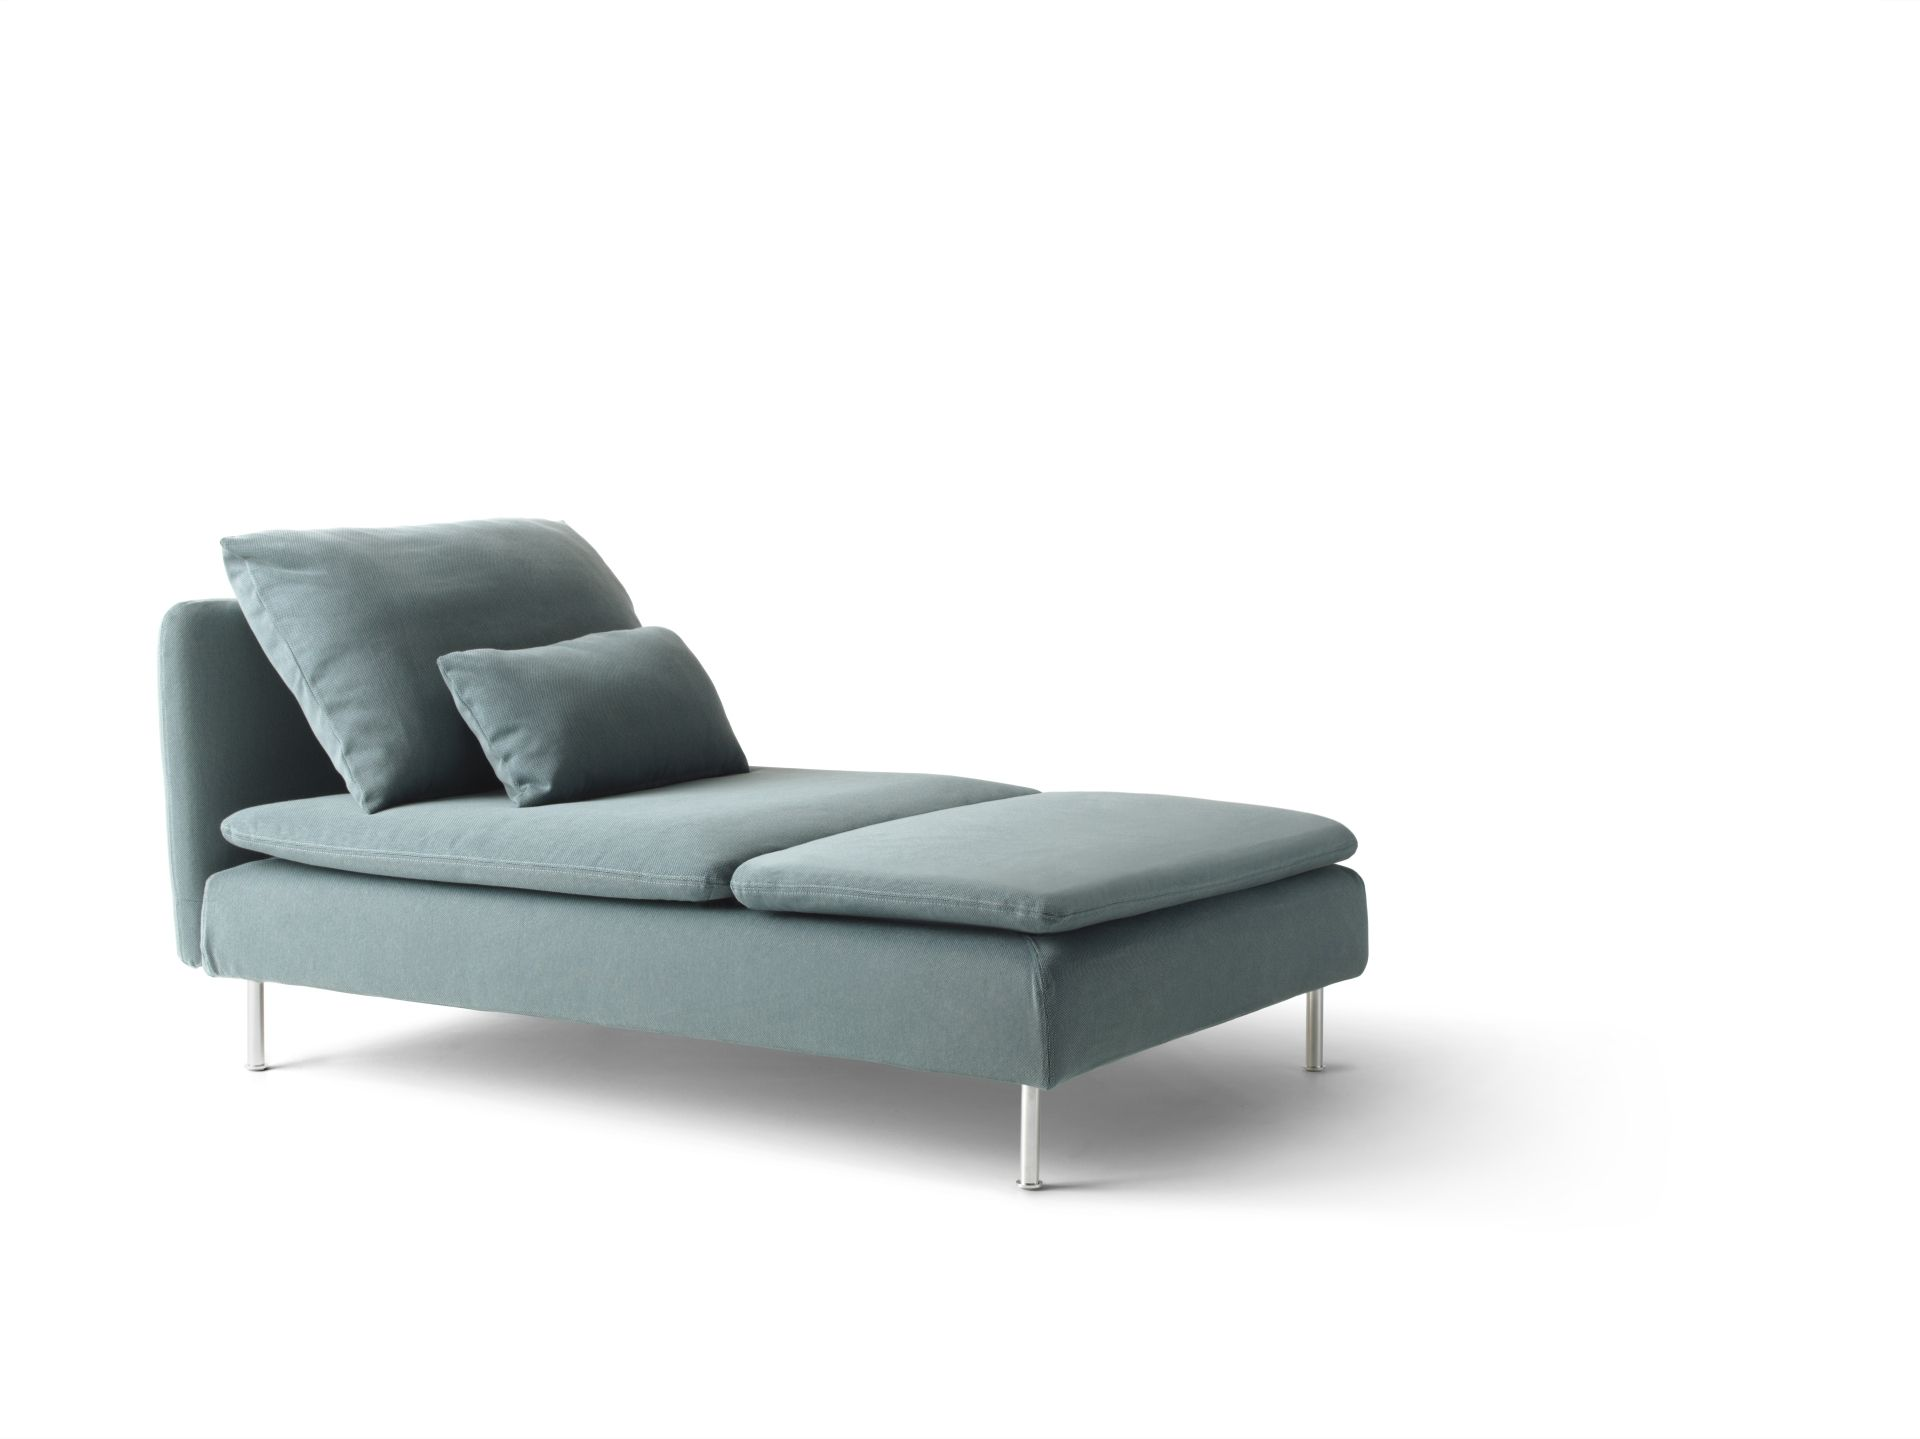 S derhamn products met and chaise longue for Chaise longue ikea